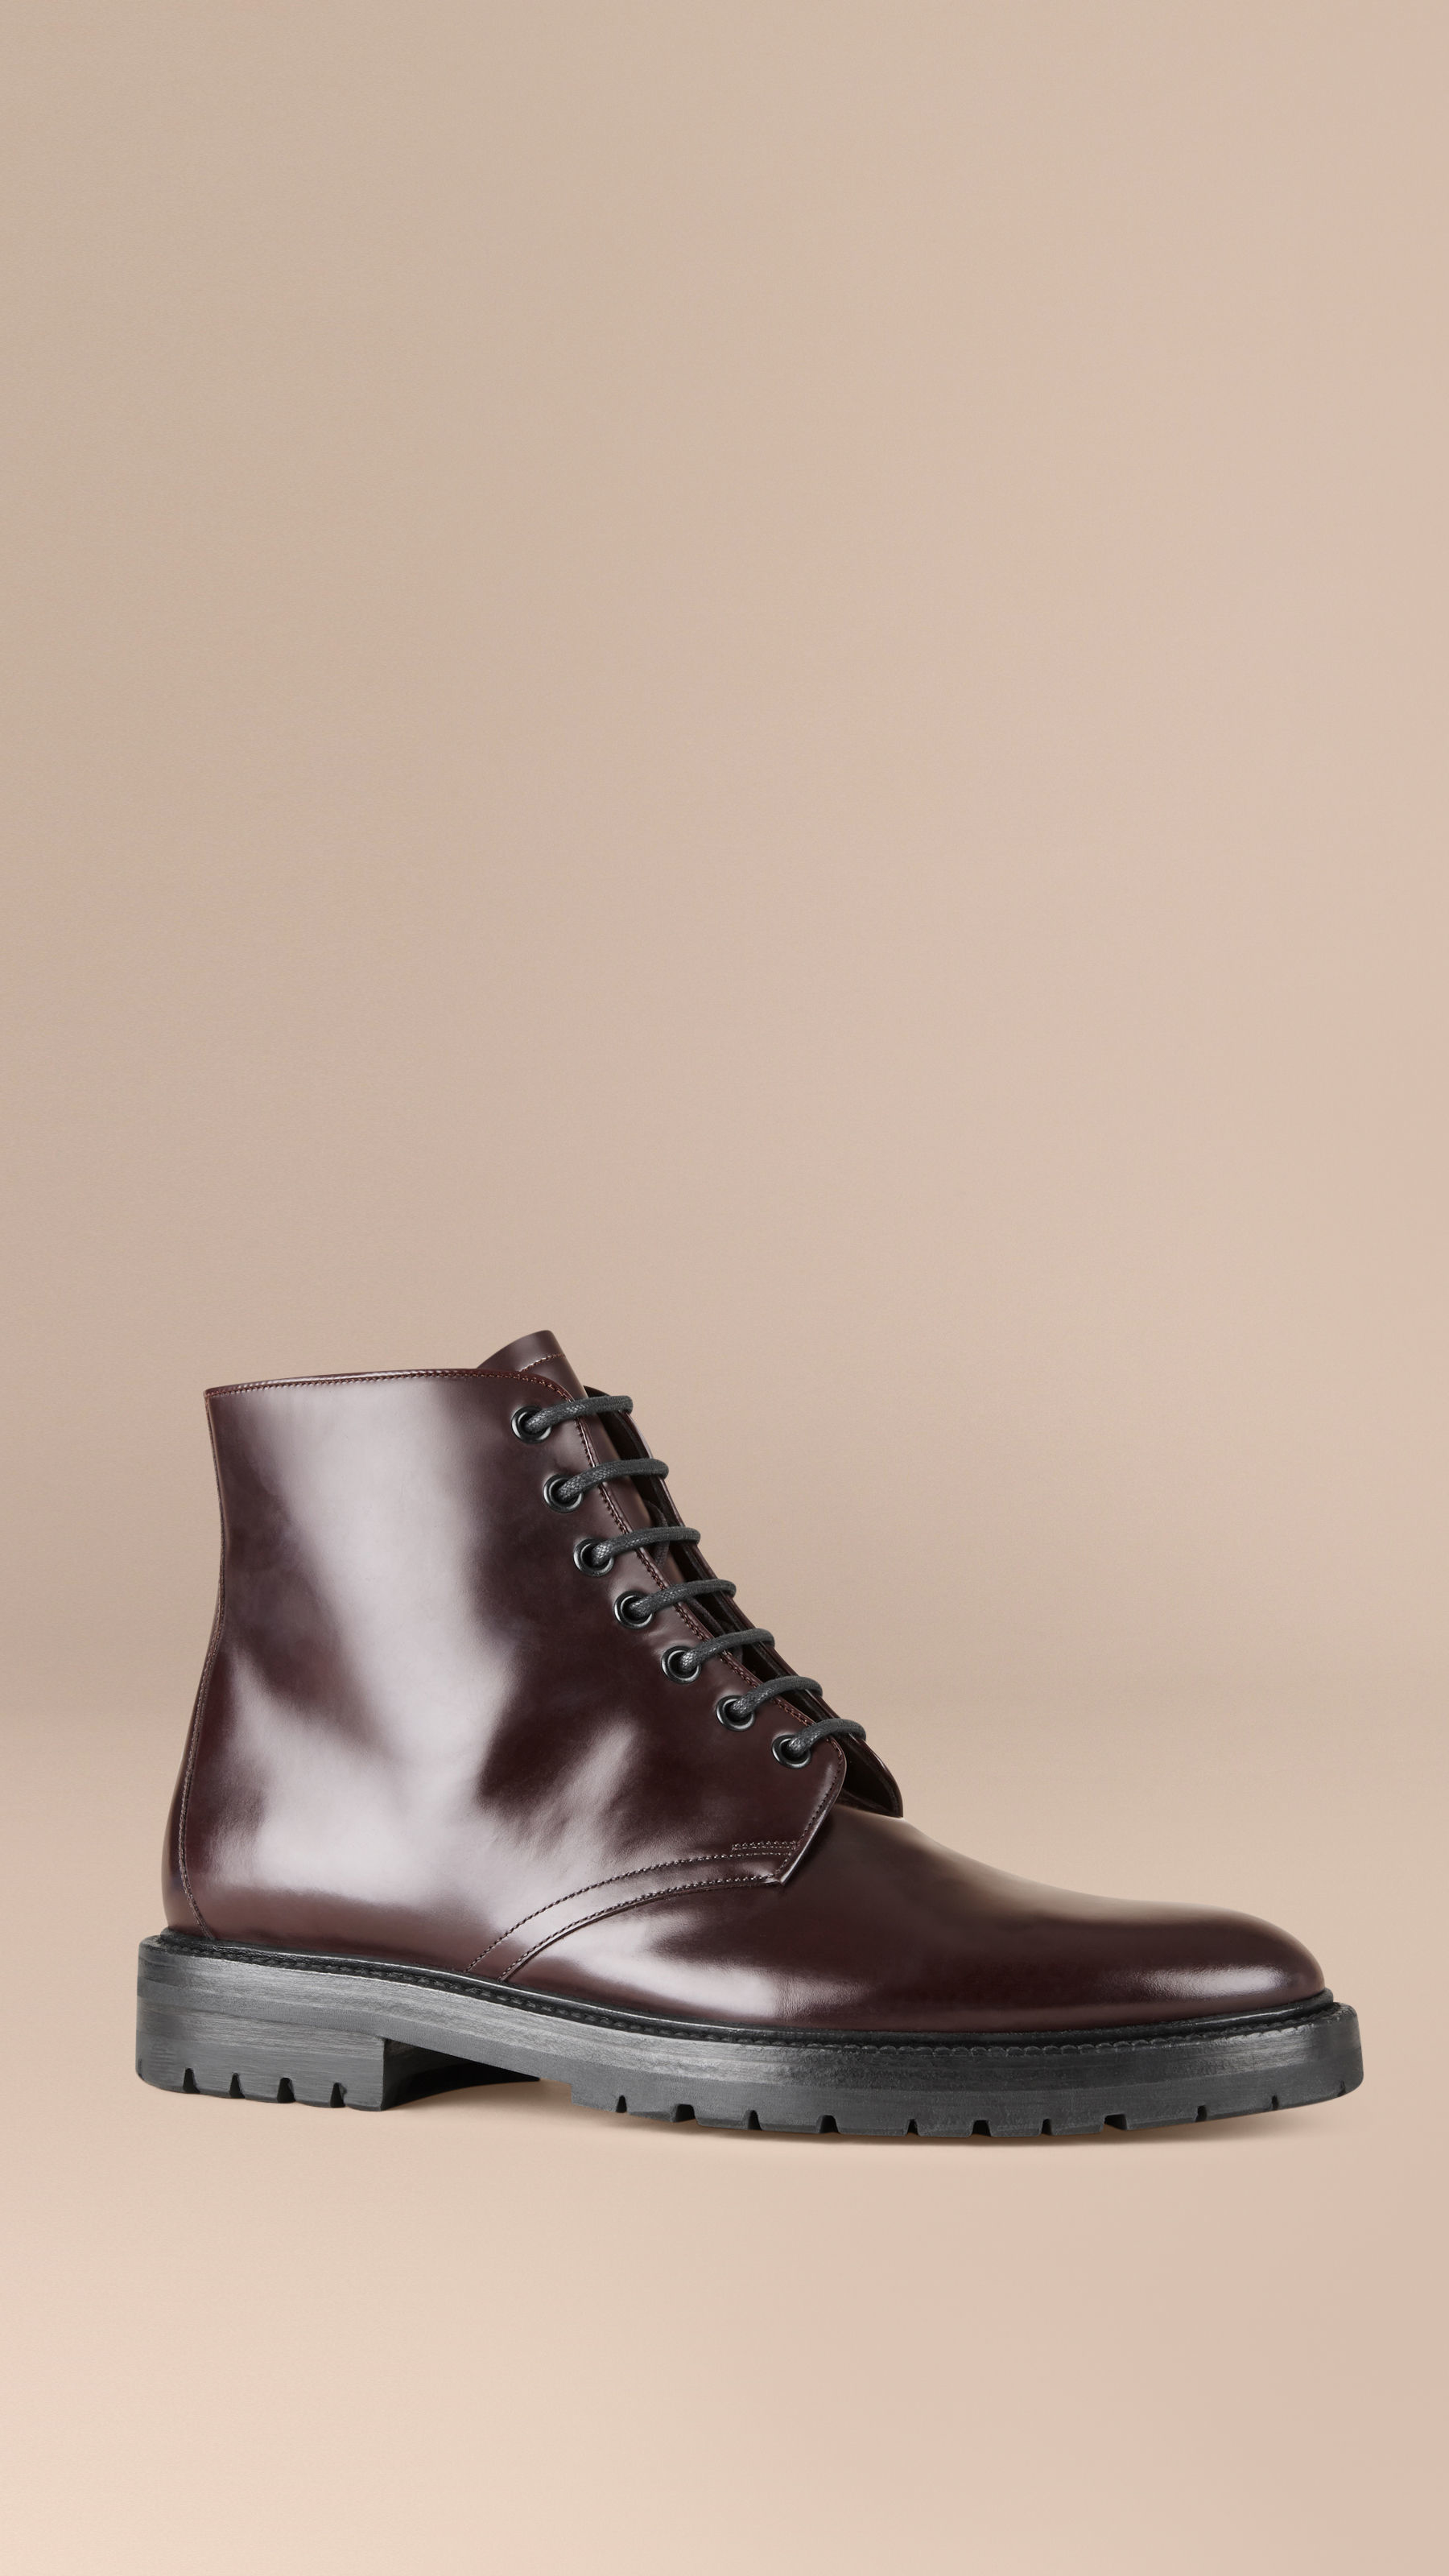 Burberry Lace Up Leather Ankle Boots In Purple For Men Lyst